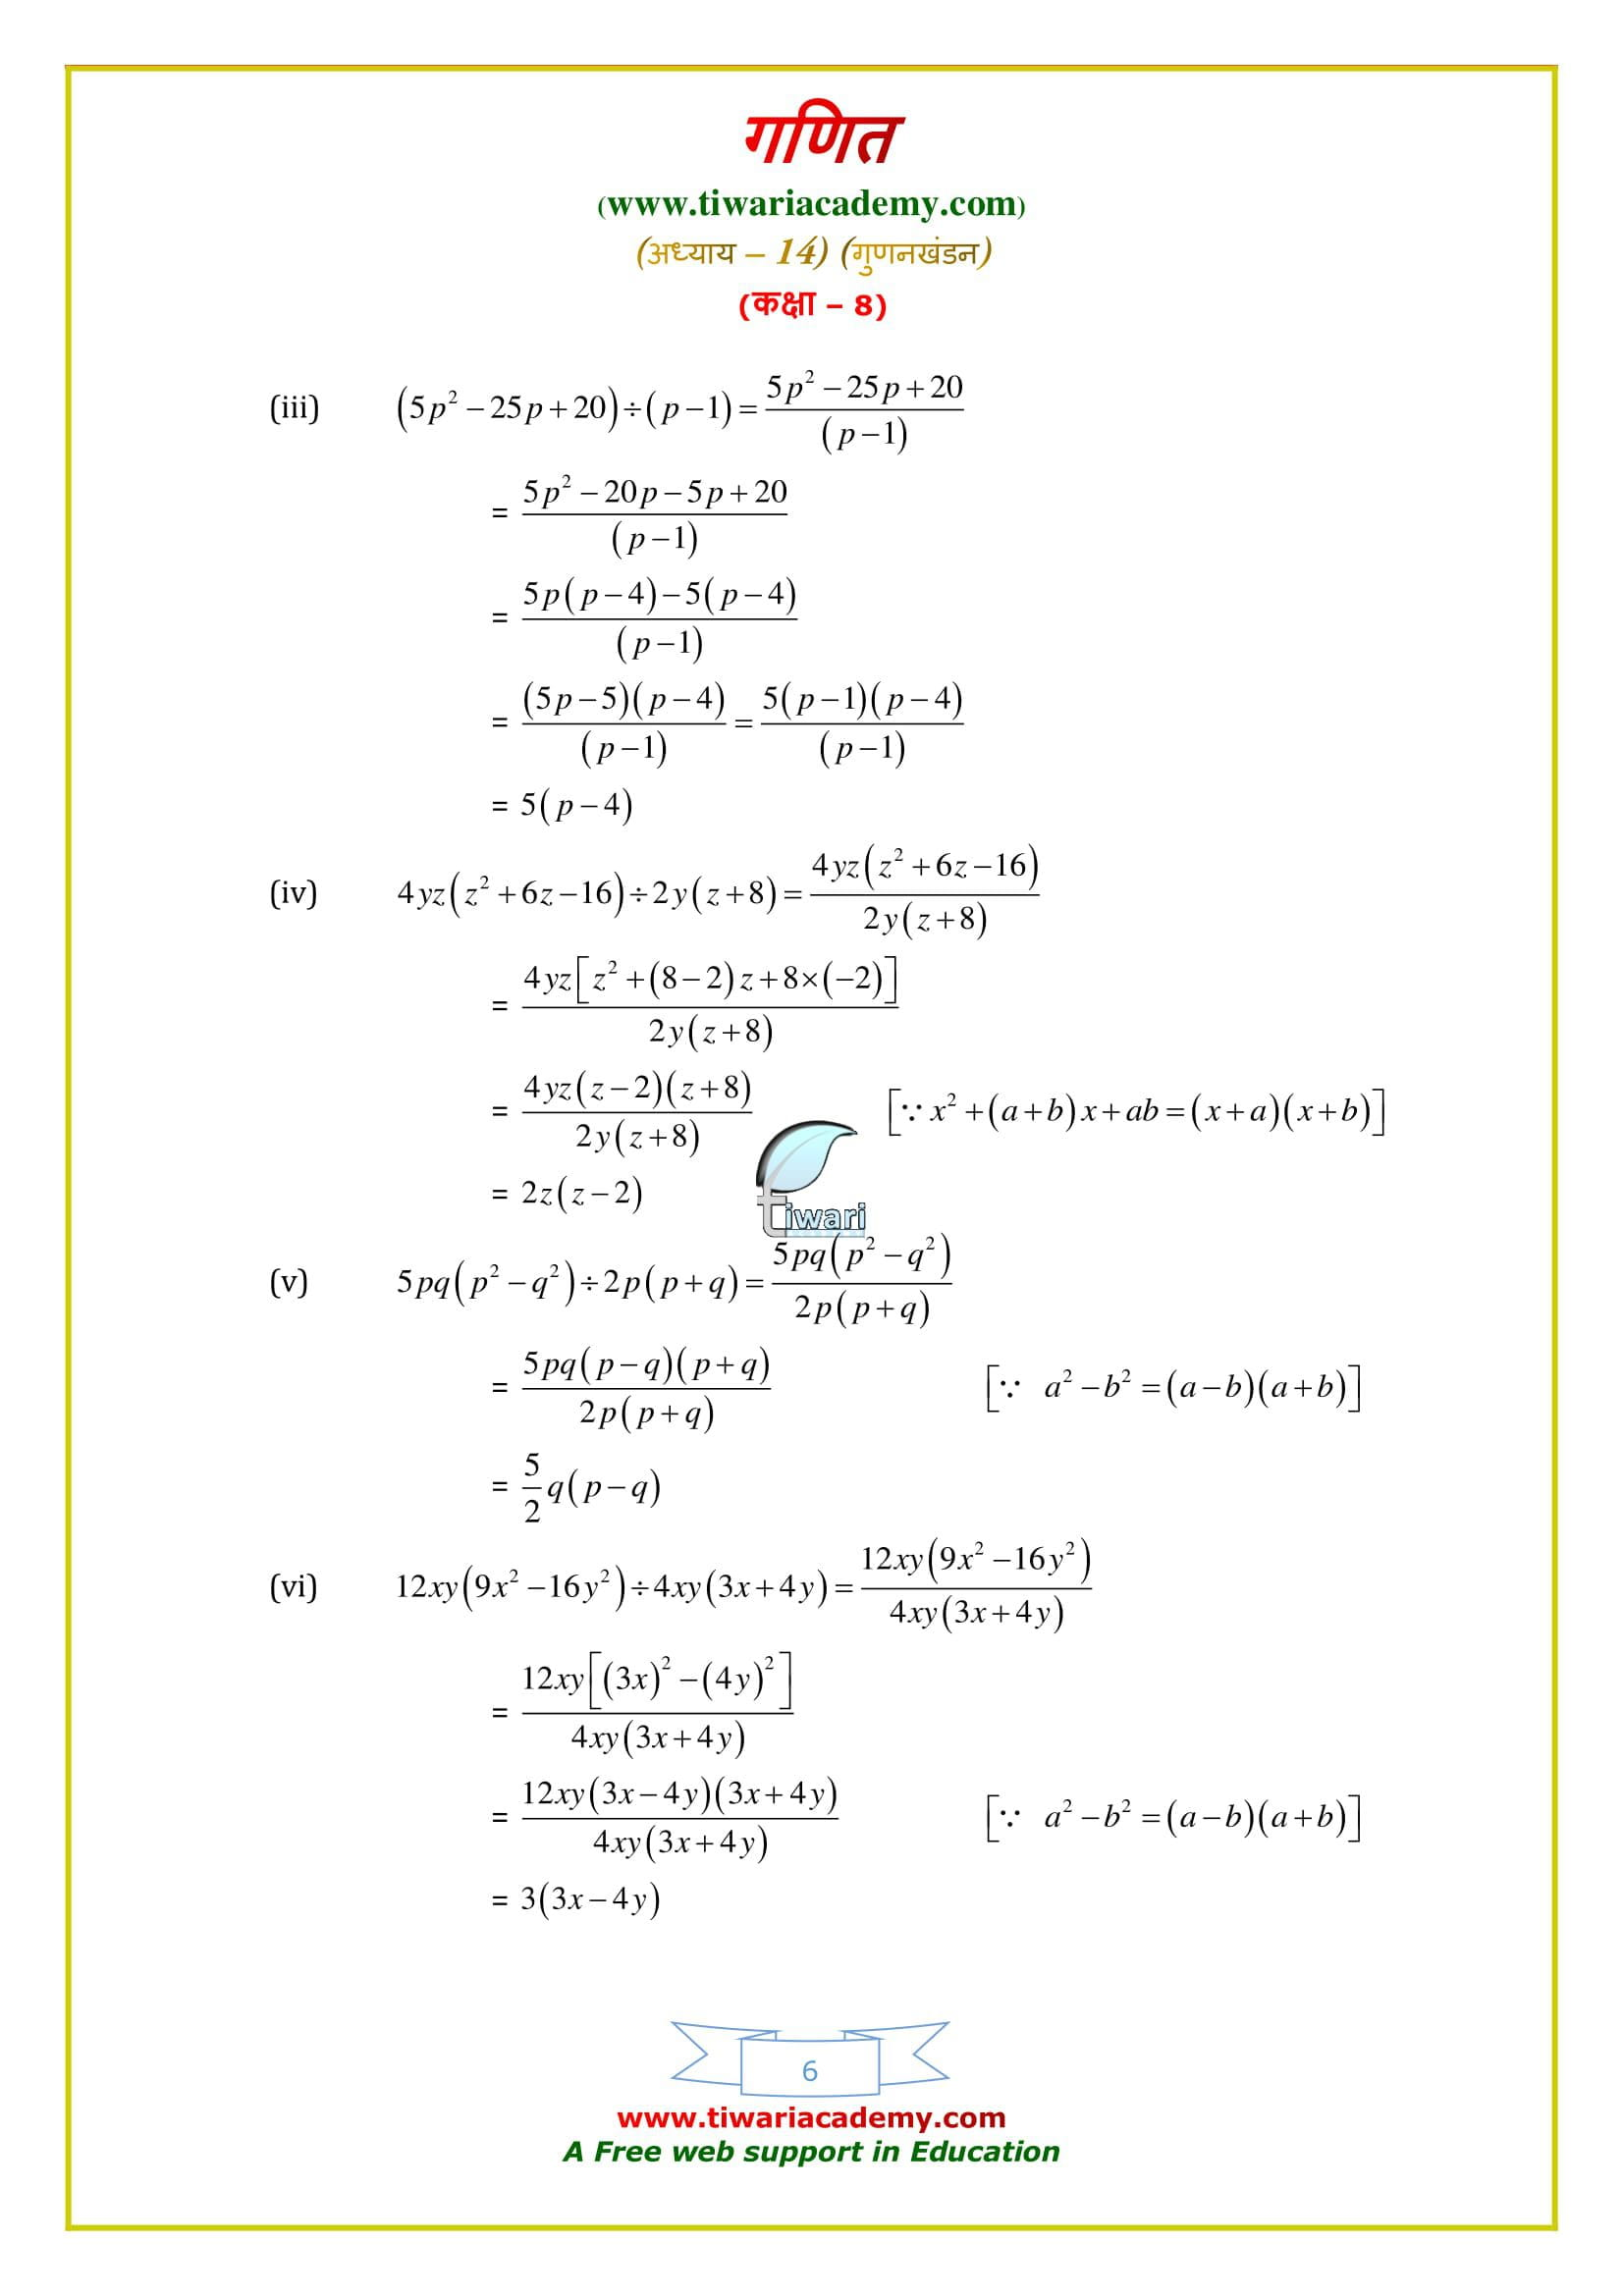 8 Maths Exercise 14.3 solutions for mp, cbse board 2019